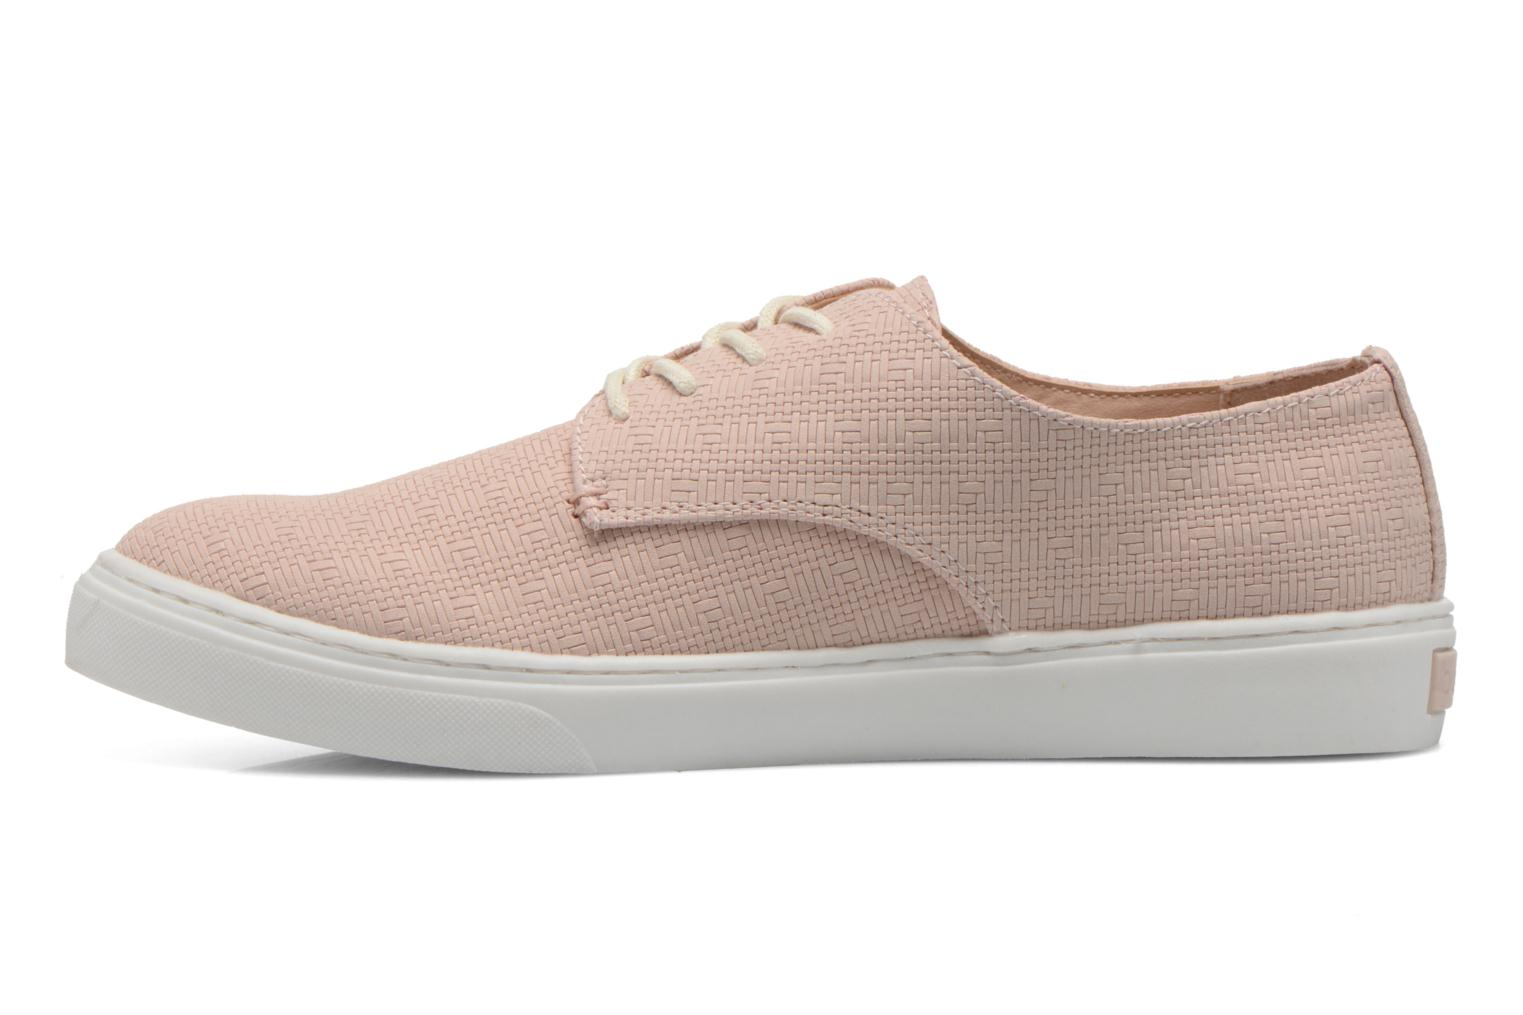 Chaussures à lacets Bugatti Roxy V6601-6N Rose vue face